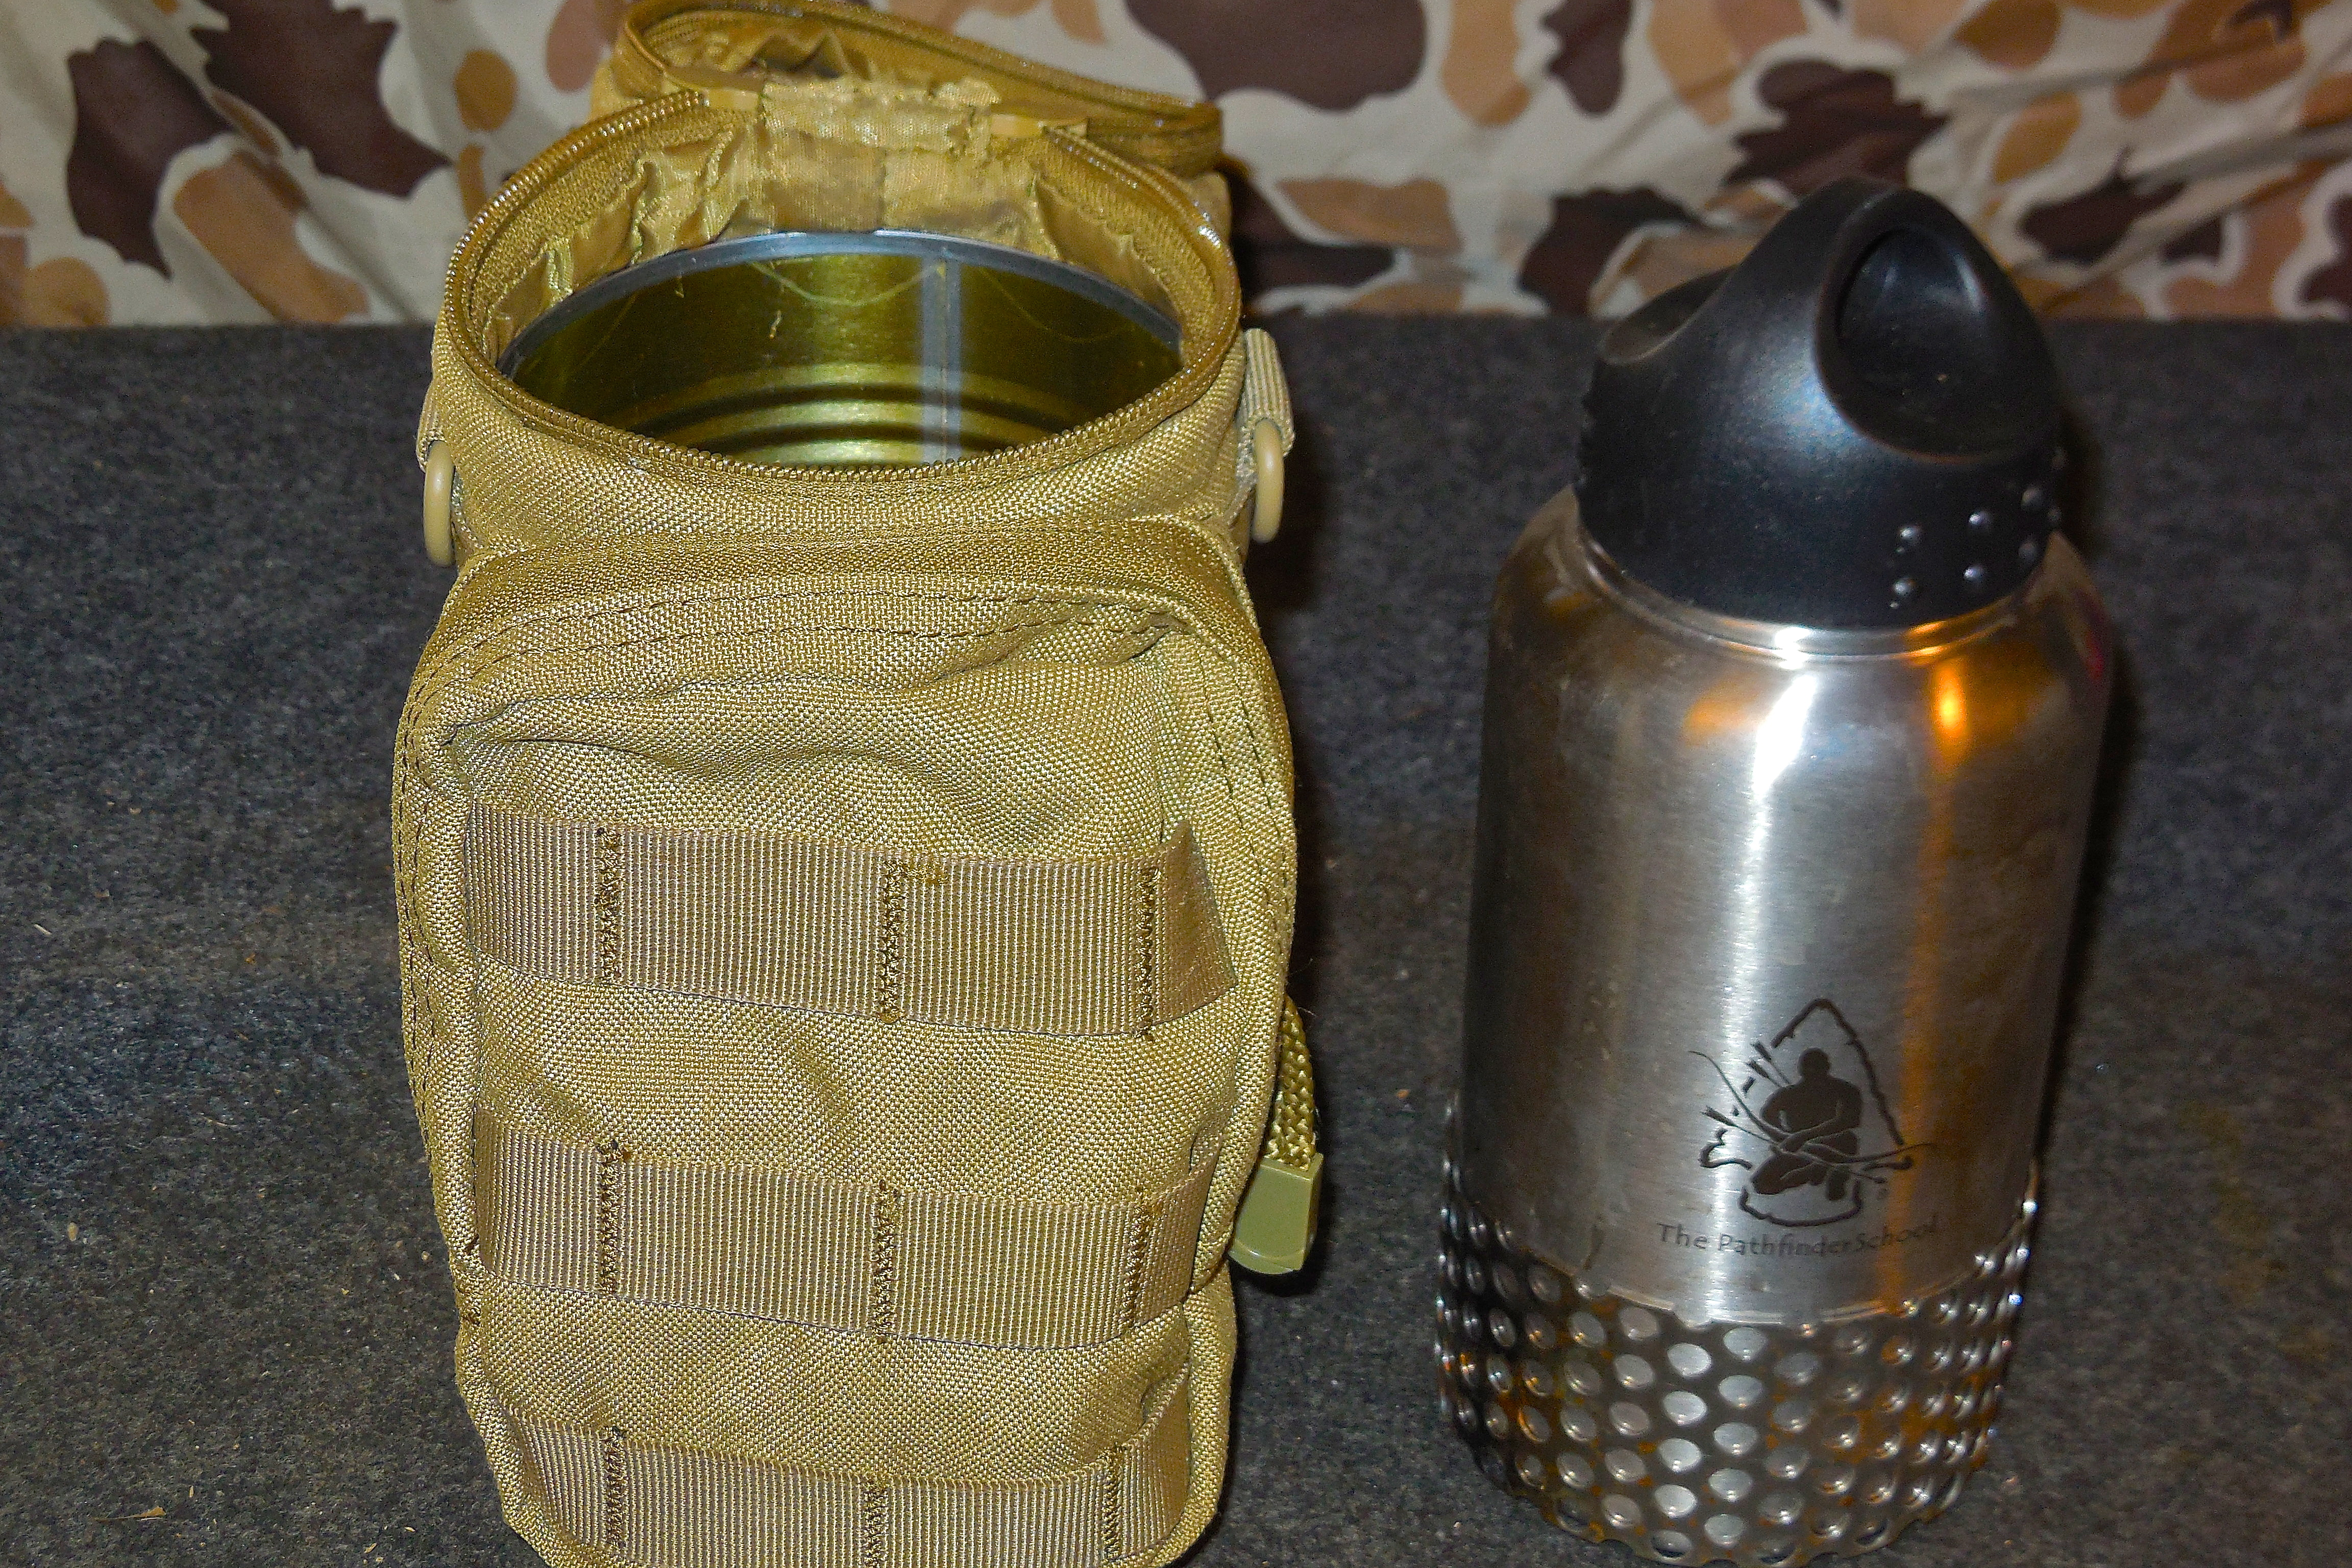 Bomb-proof mod for the 'Pathfinder Cook Kit' » Intellihub